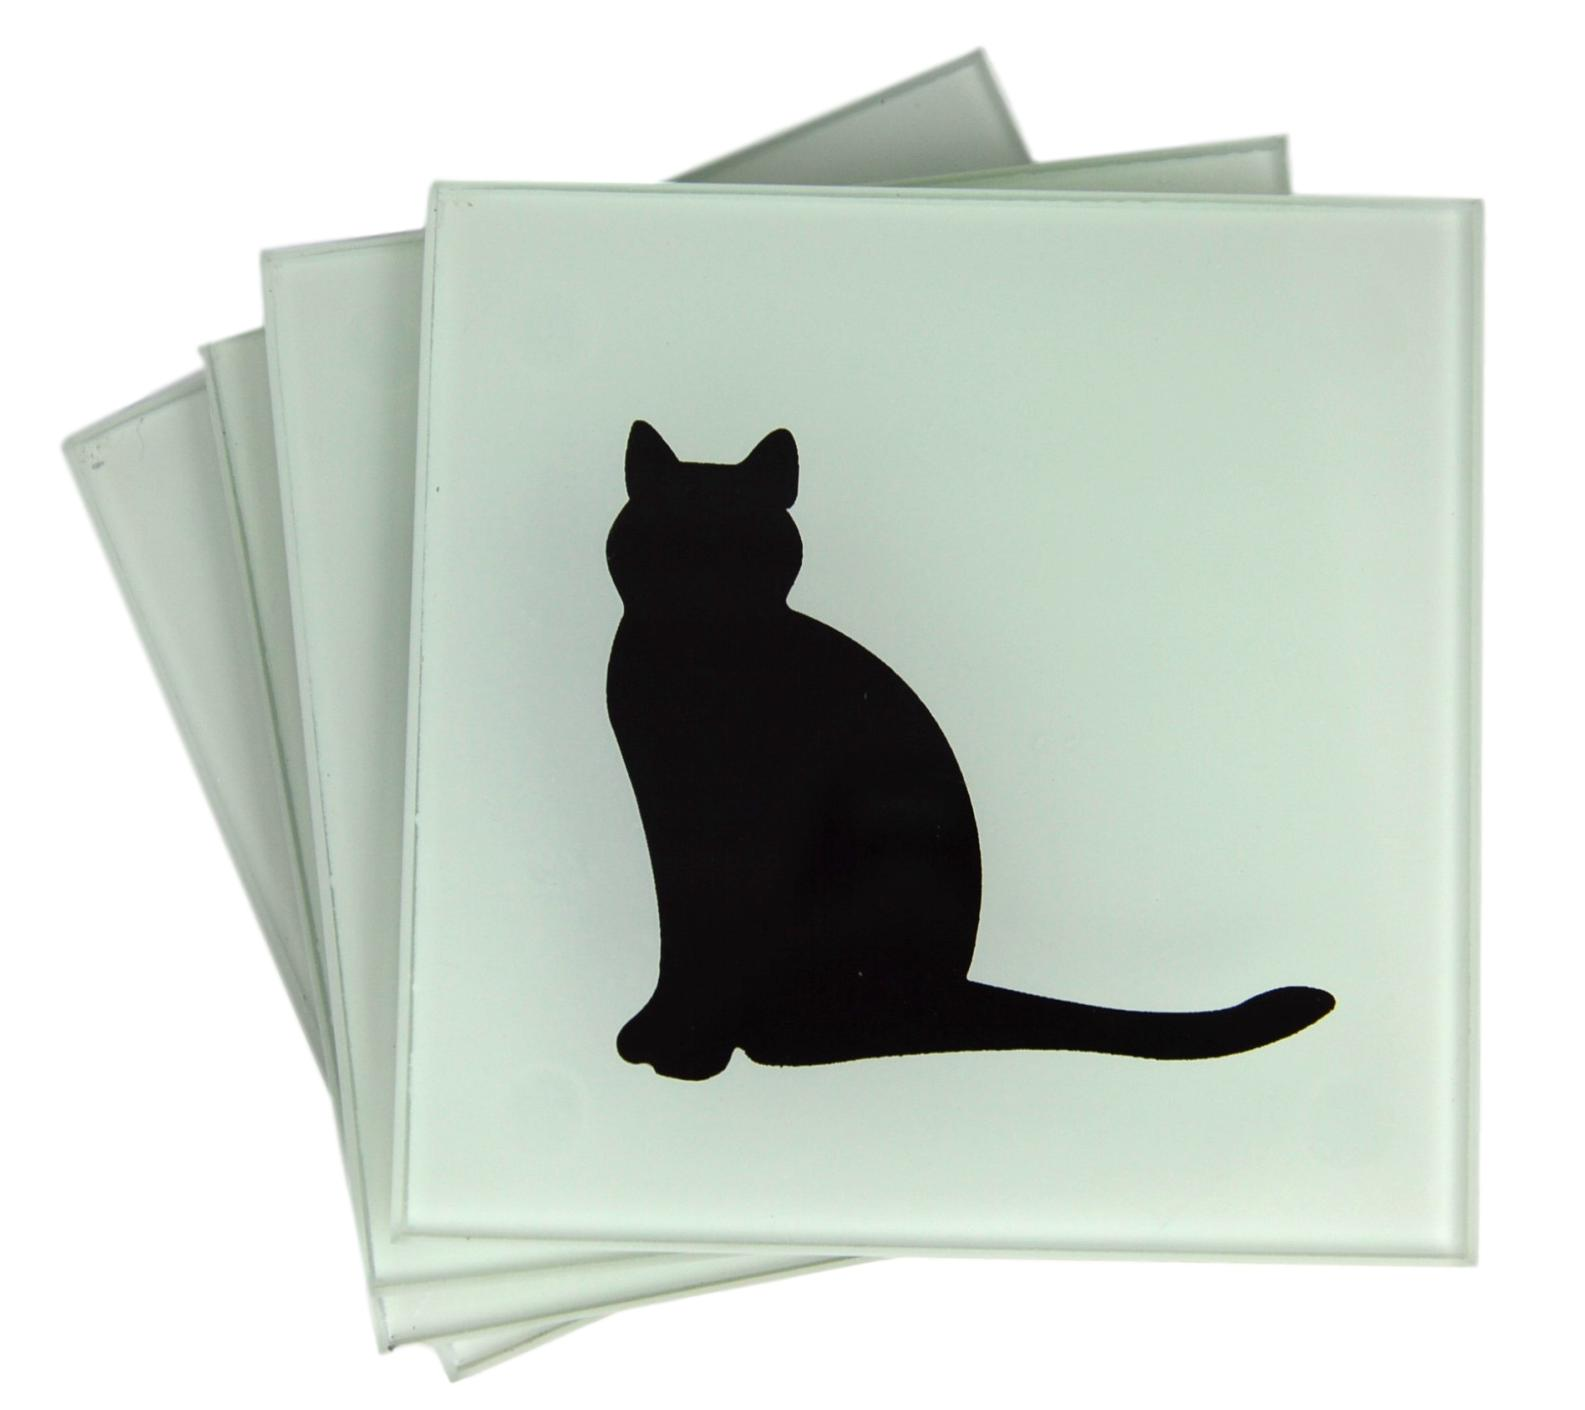 Set of 4 Frosted Glass Silhouette Cat Coasters